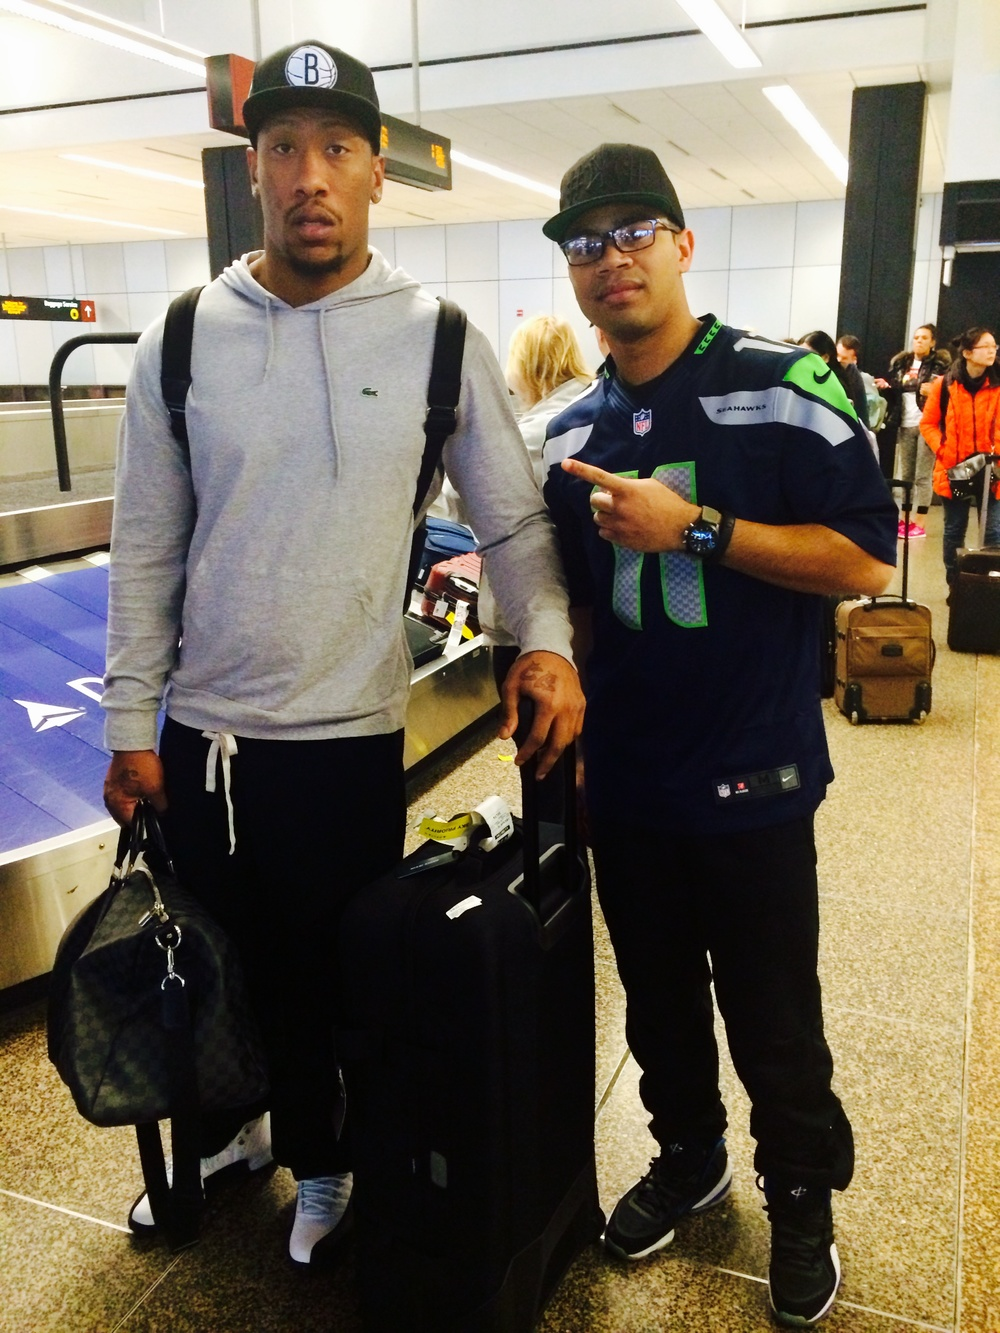 Seattle-Tacoma International Airport (SEA) Took my talents to Seattle today and bumped into Super Bowl Champ Bruce Irvin! @Seahawks @BIrvin_WVU11 #12thMan #Champs #PercyHarvin